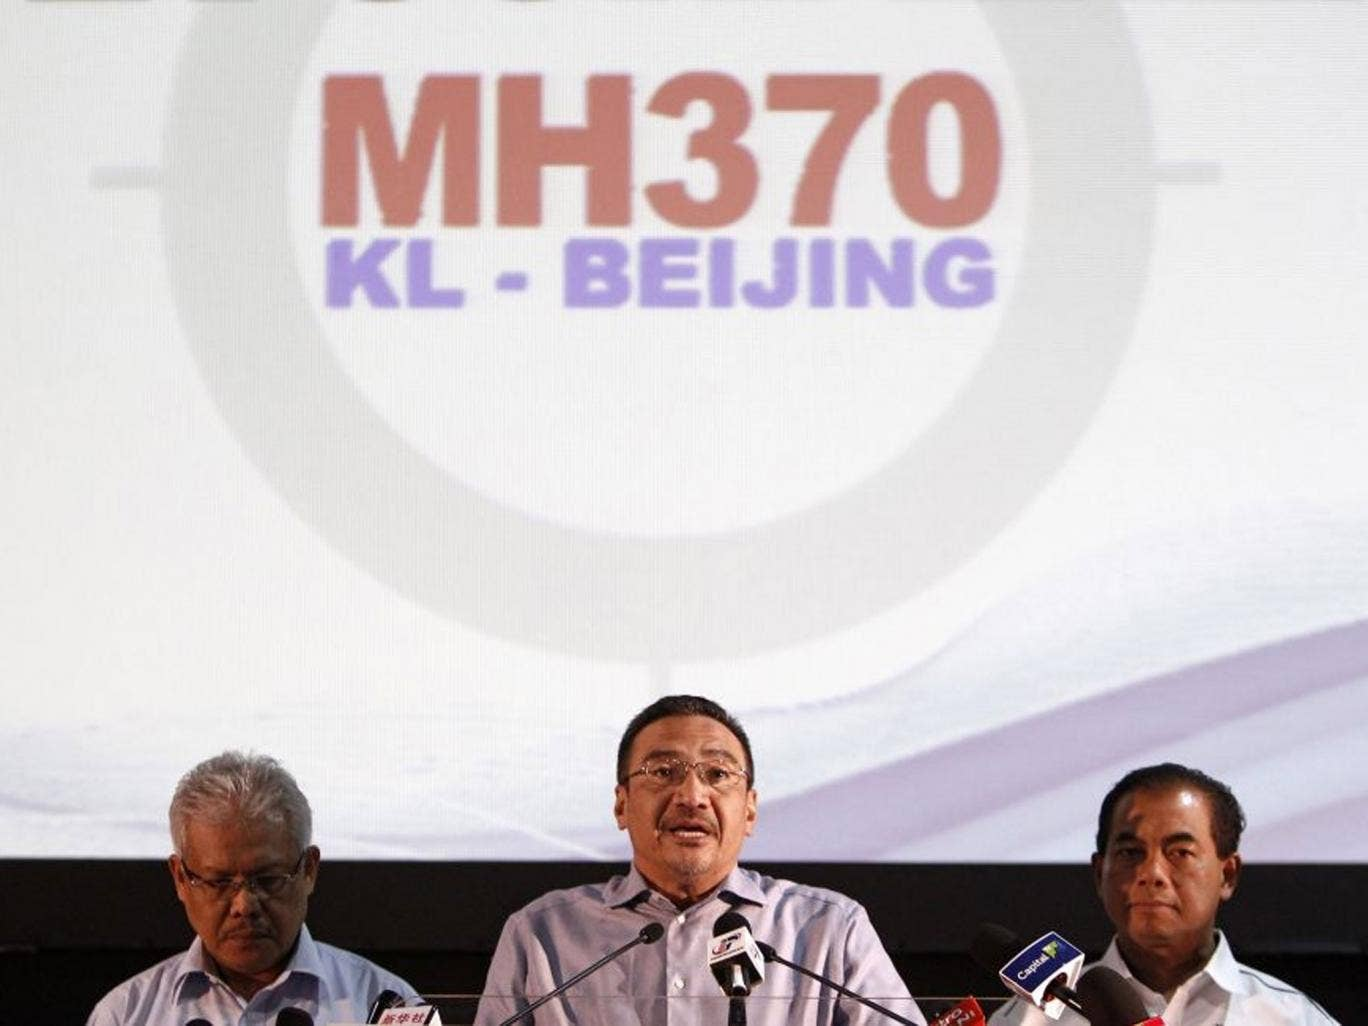 Malaysian acting Transport Minister Hishammuddin Hussein, center, speaks as Malaysian Deputy Foreign Minister Hamzah Zainuddin, left, and Malaysian Deputy Transport Minister Abdul Aziz Kaprawi listen during a press conference for the missing Malaysia Airl